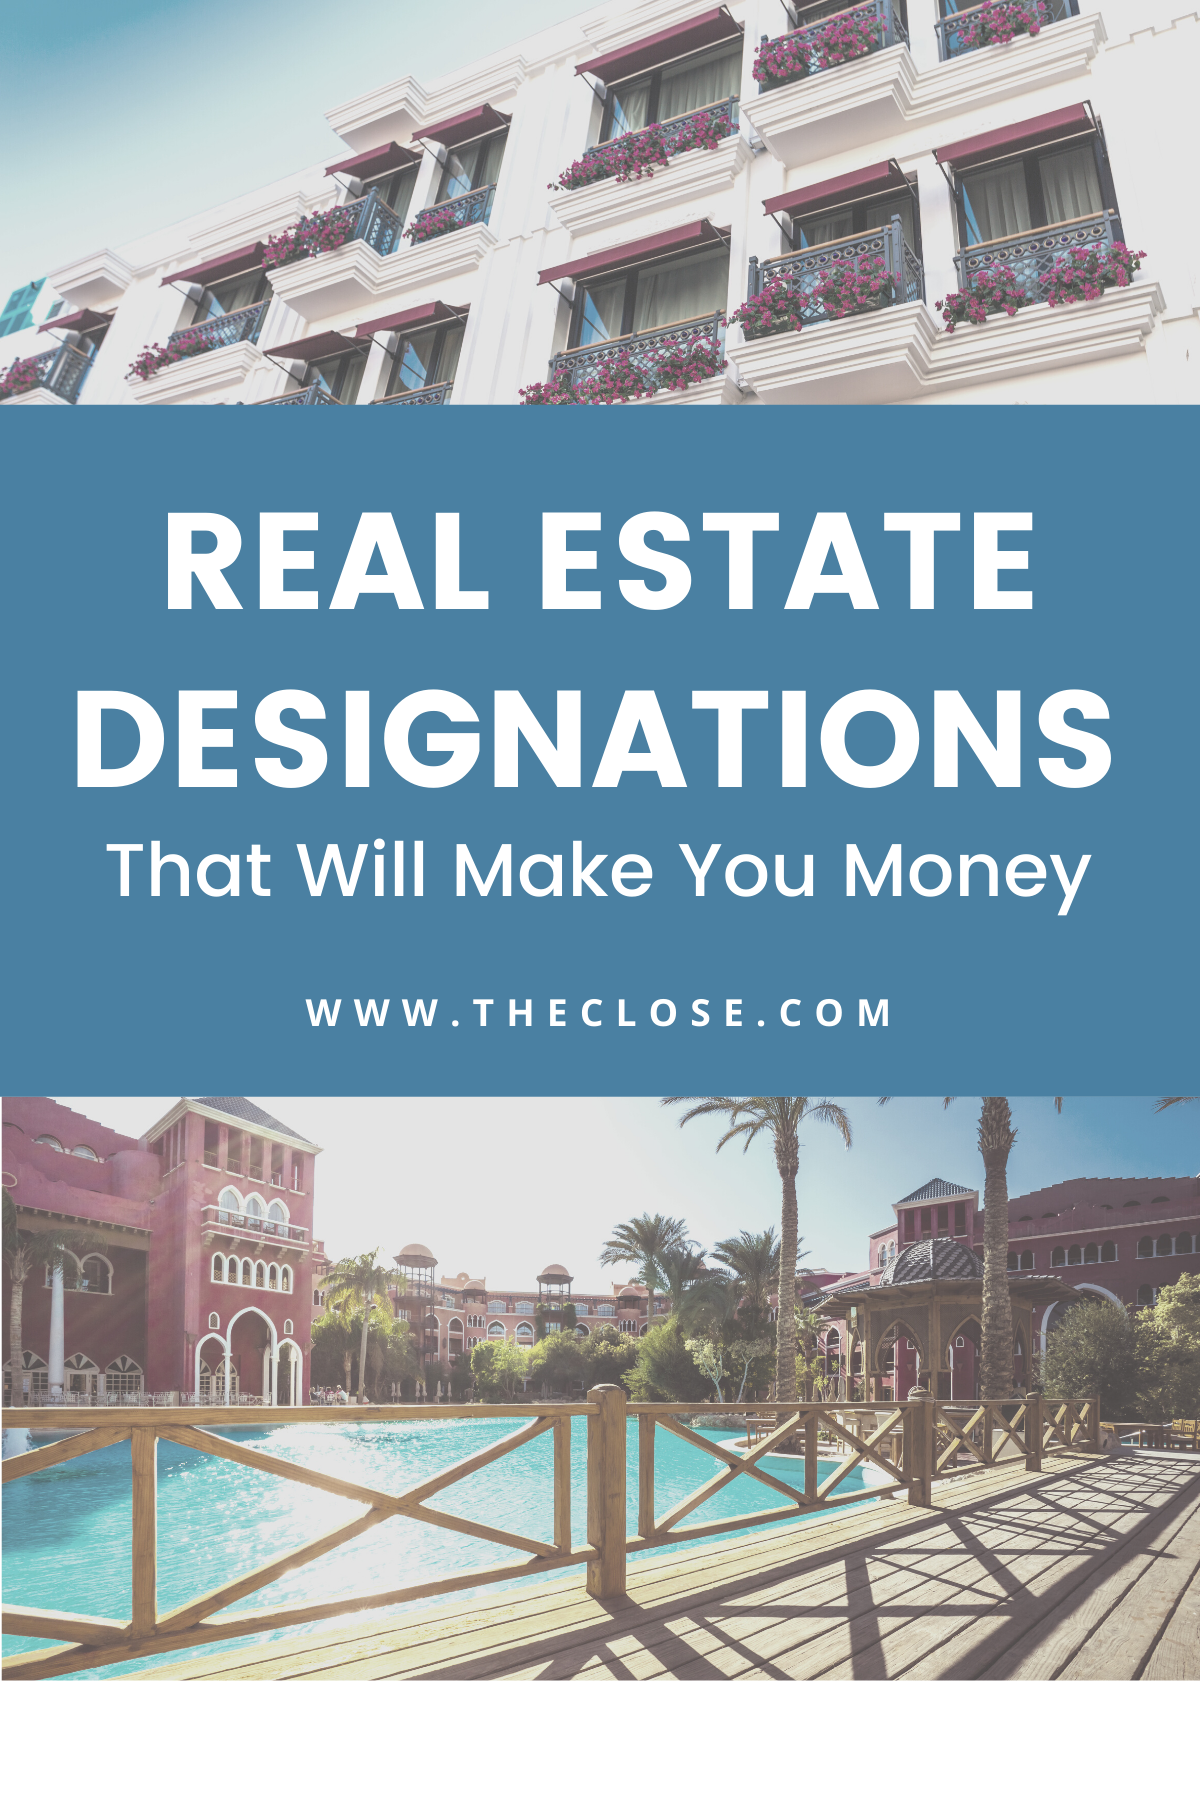 Real Estate Designations That Will Make You Money